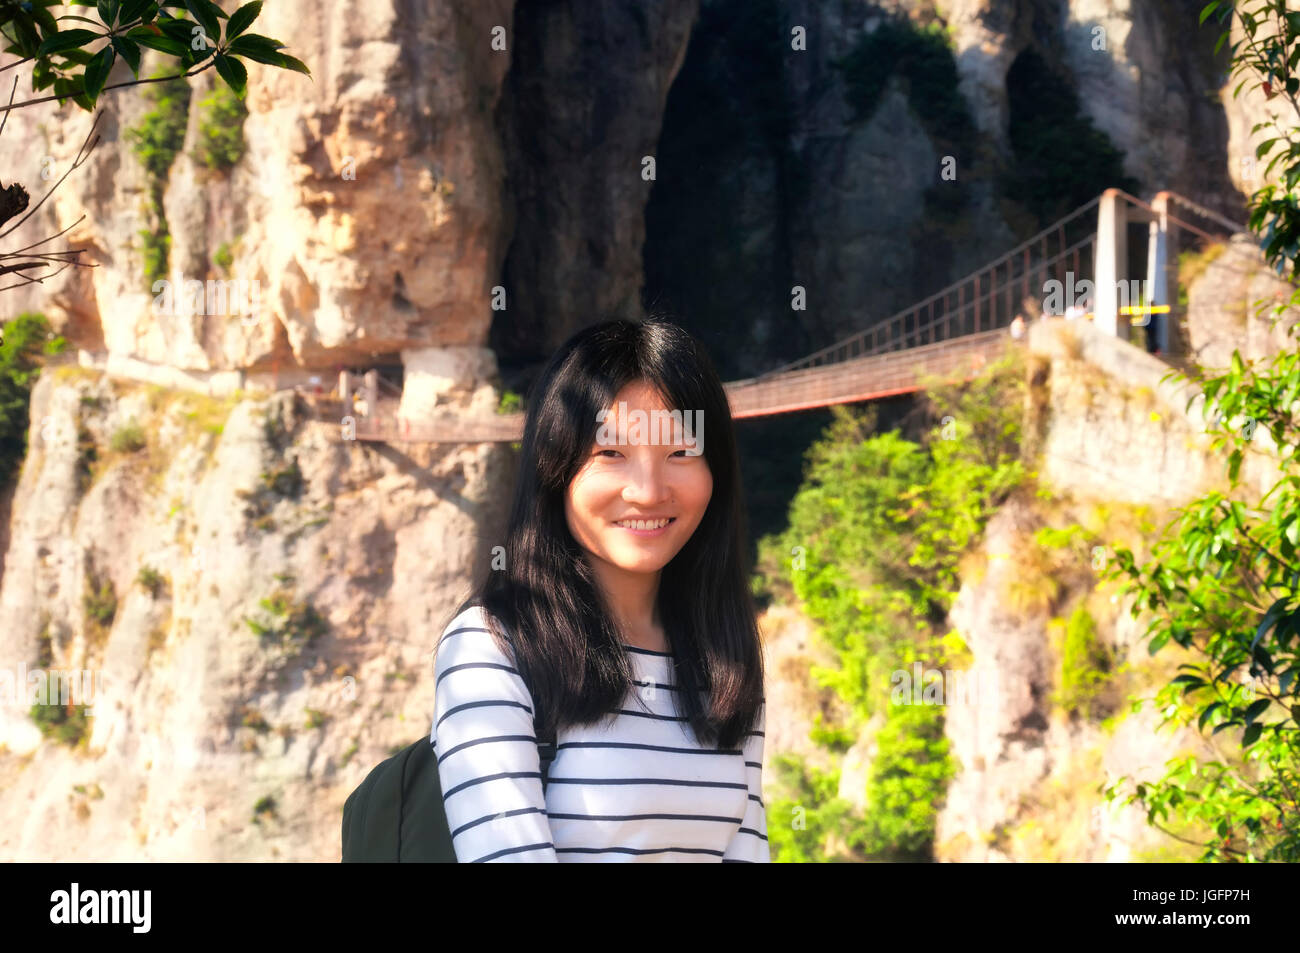 A chinese woman smiling with the Fangdong suspension bridge spanning a sheer cliff in the background in the yandangshan - Stock Image